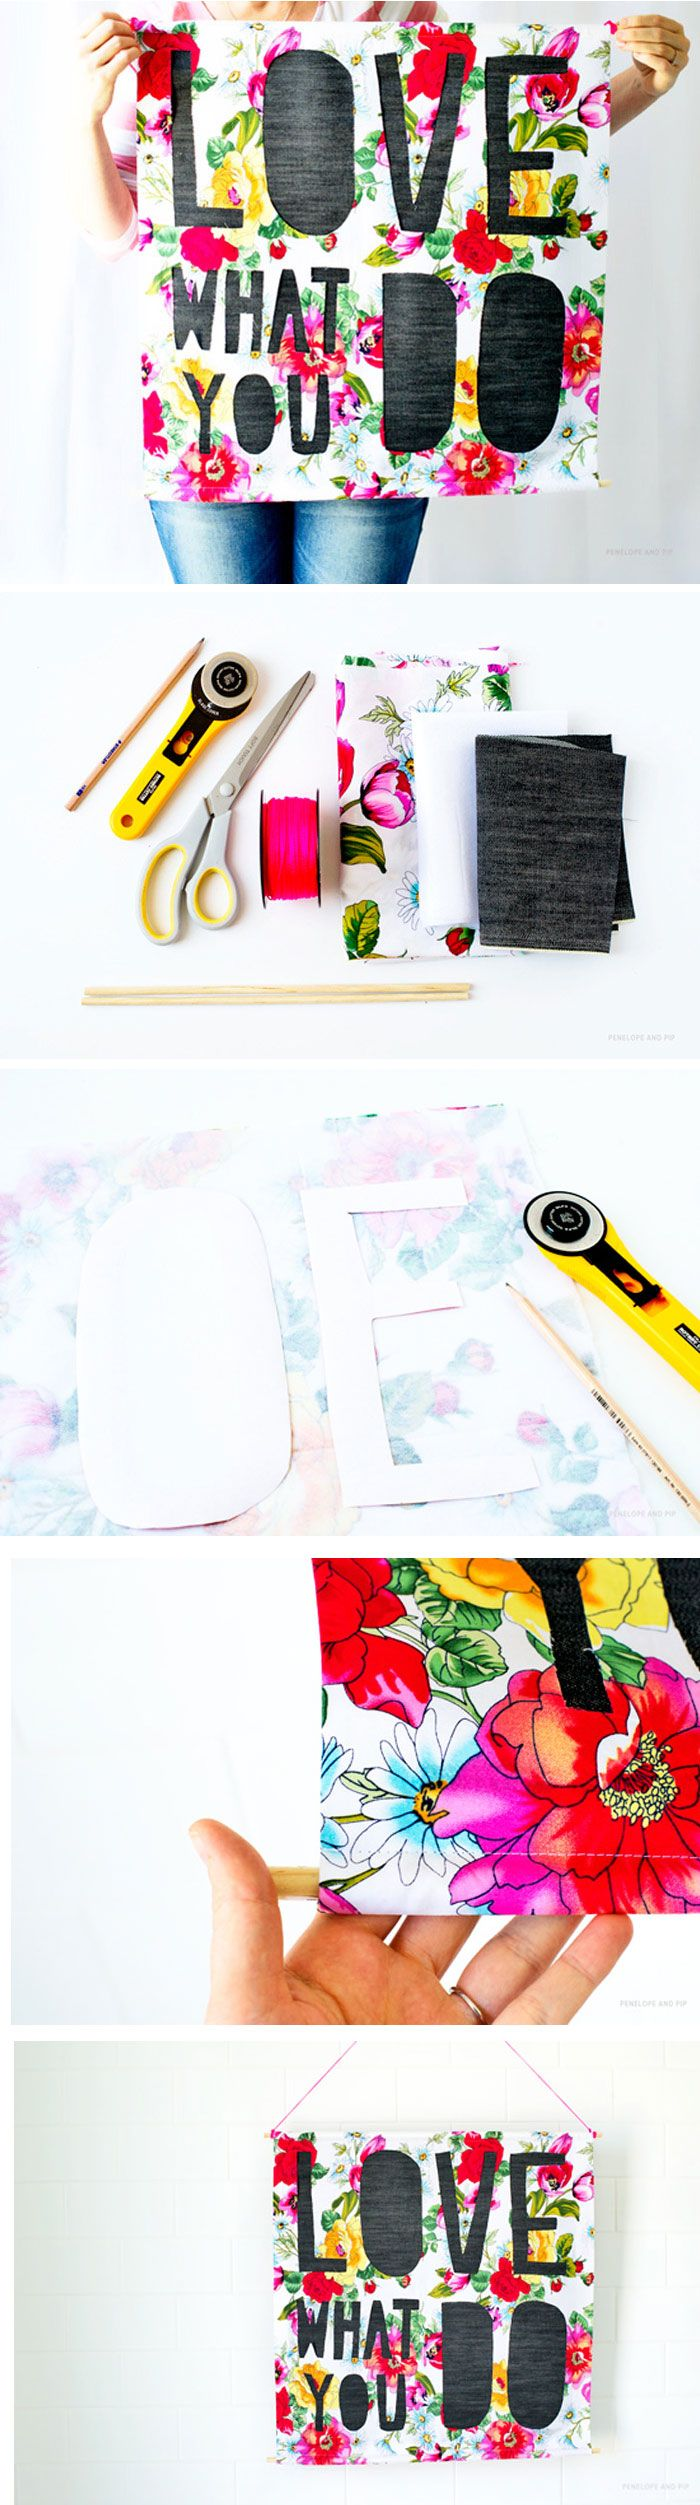 DIY Paper cut-inspired wall hanging - a fun summer project for the dorm or kids/teen room. #backtoschool #dorm